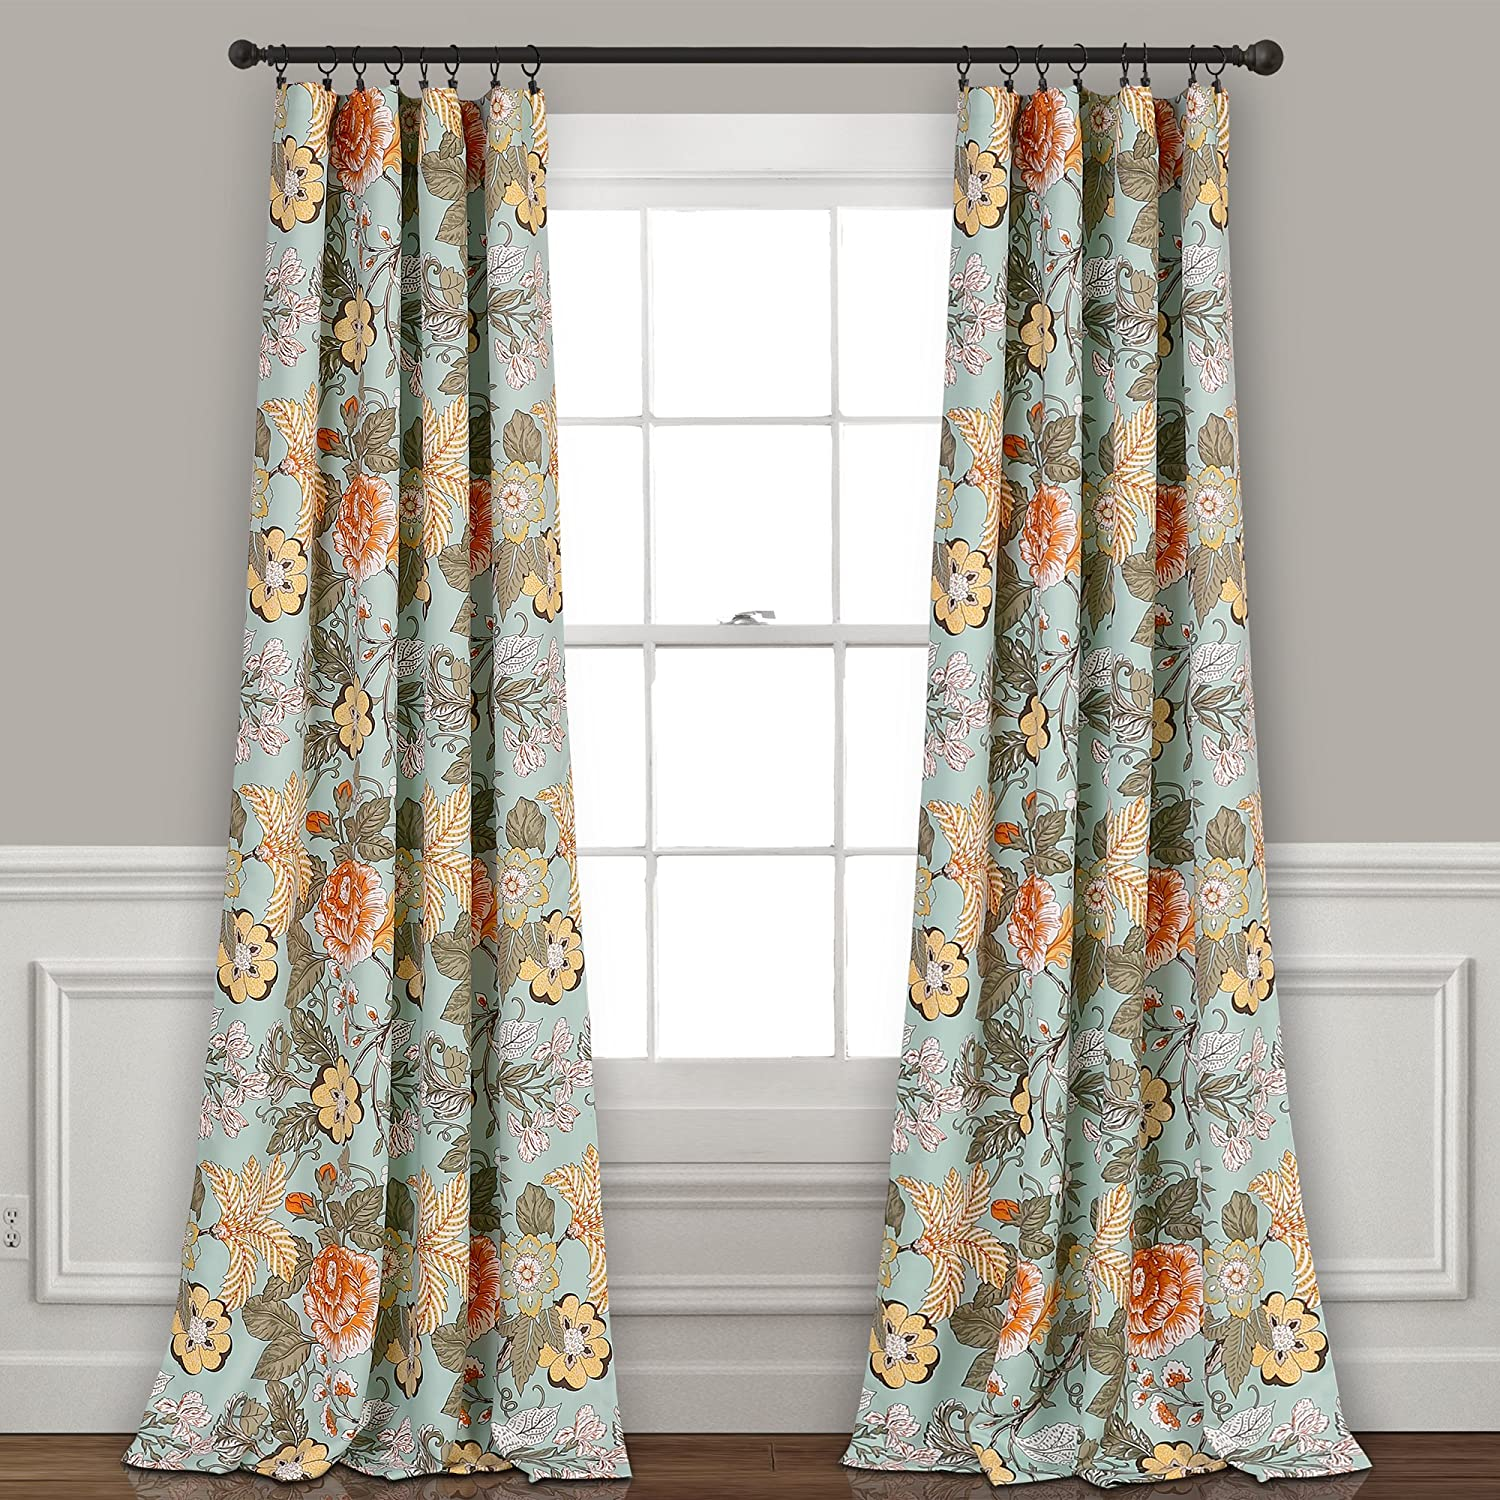 "Lush Decor Sydney Curtains | Floral Garden Room Darkening Window Panel Set for Living, Dining, Bedroom (Pair), 84"" x 52"", Blue and Green, 84"" x 52"", Blue & Green"